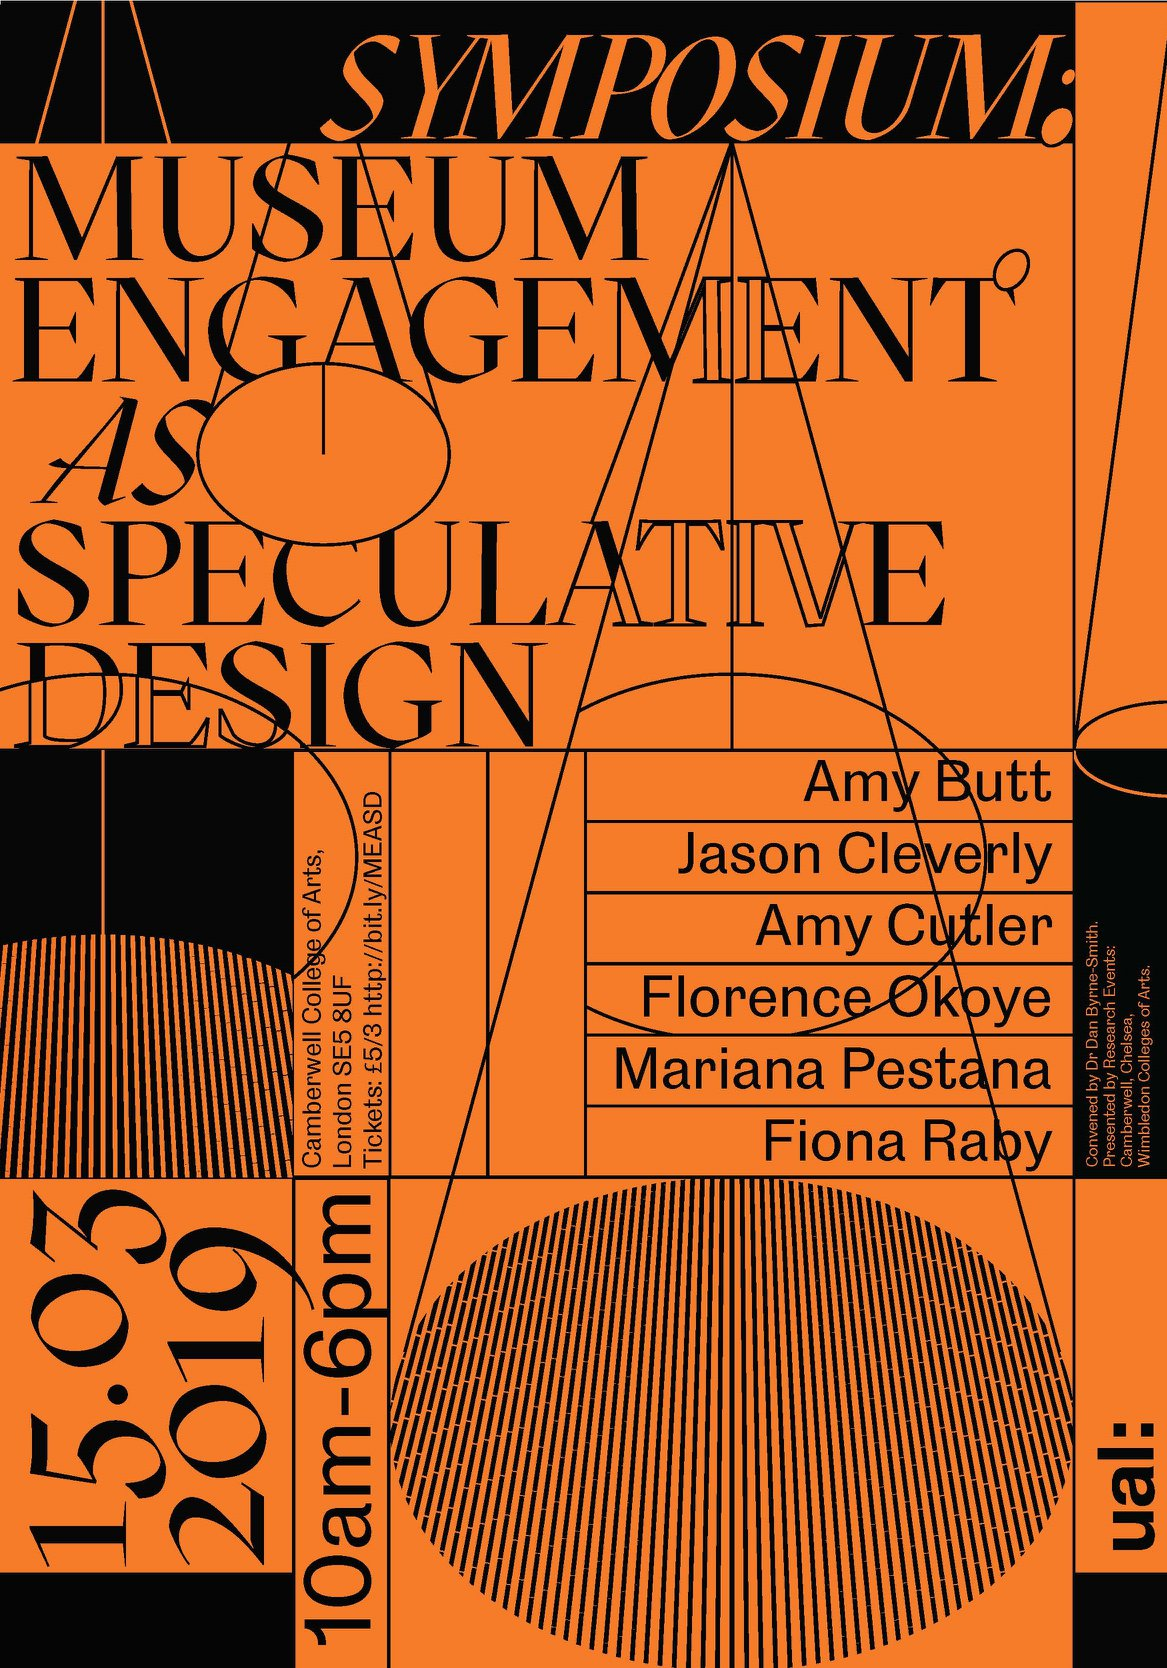 fig.5: Symposium poster designed by Petra Péterffy